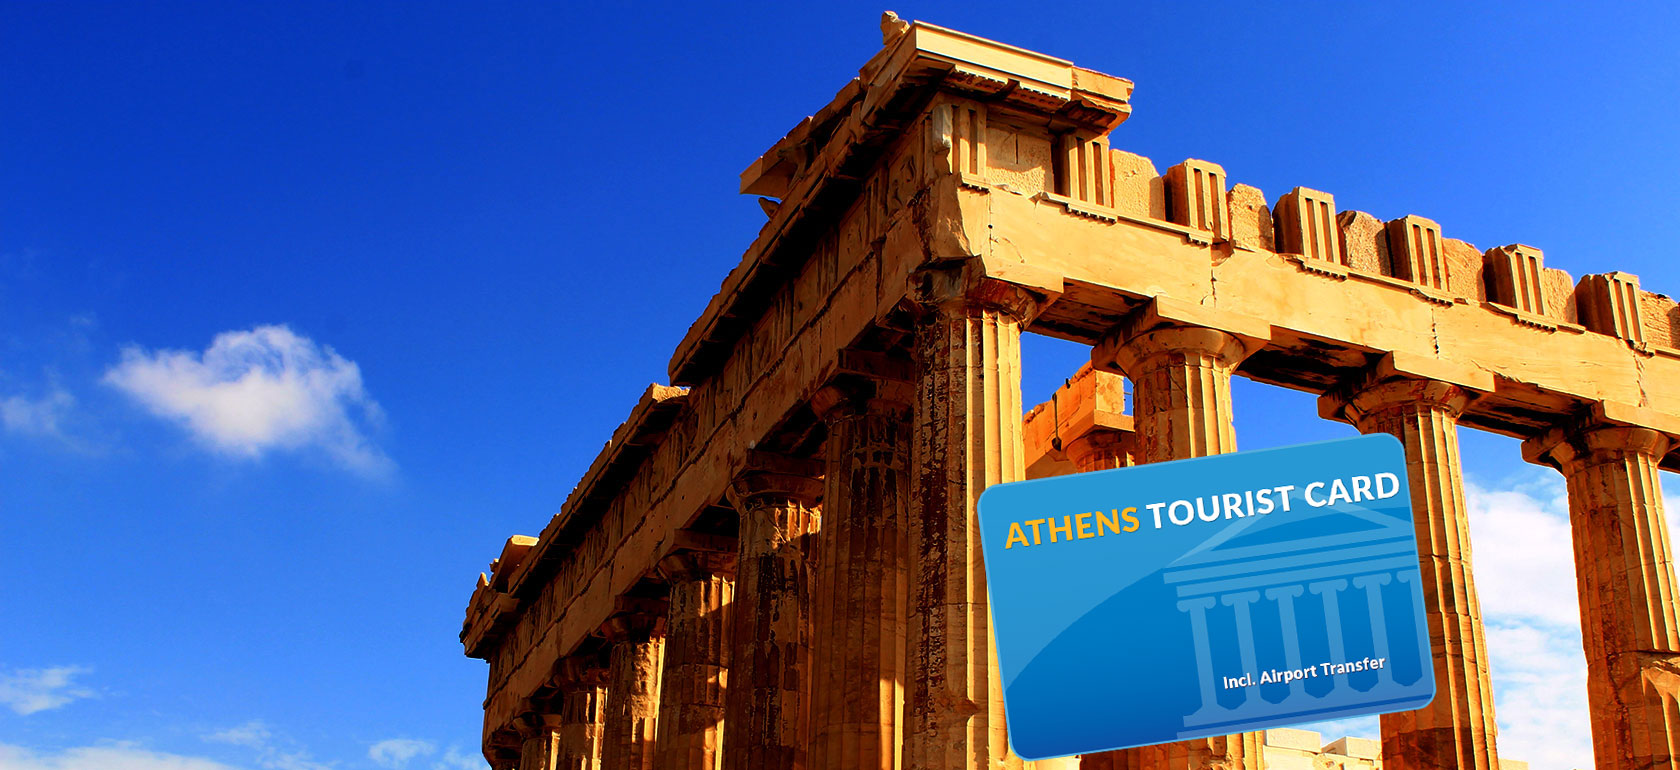 Athene Tourist Card (Incl. Akropolis museum)